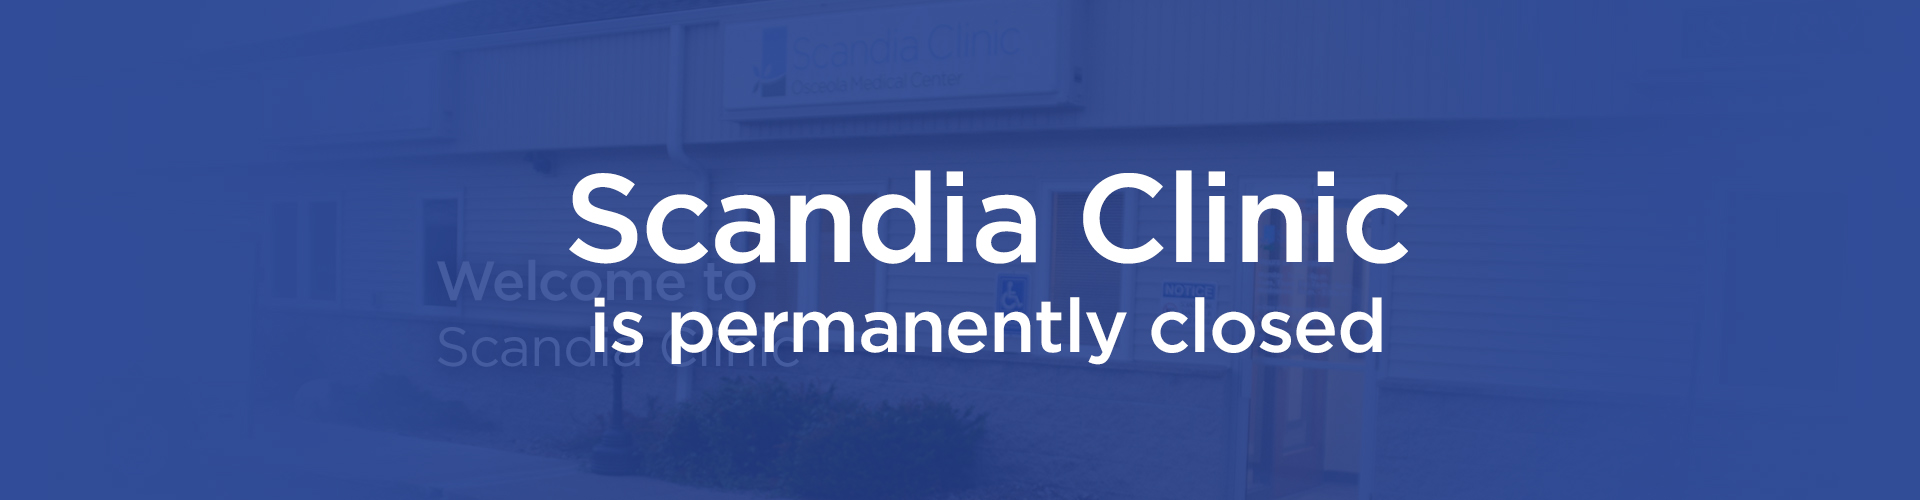 Welcome to Scandia Clinic Banner